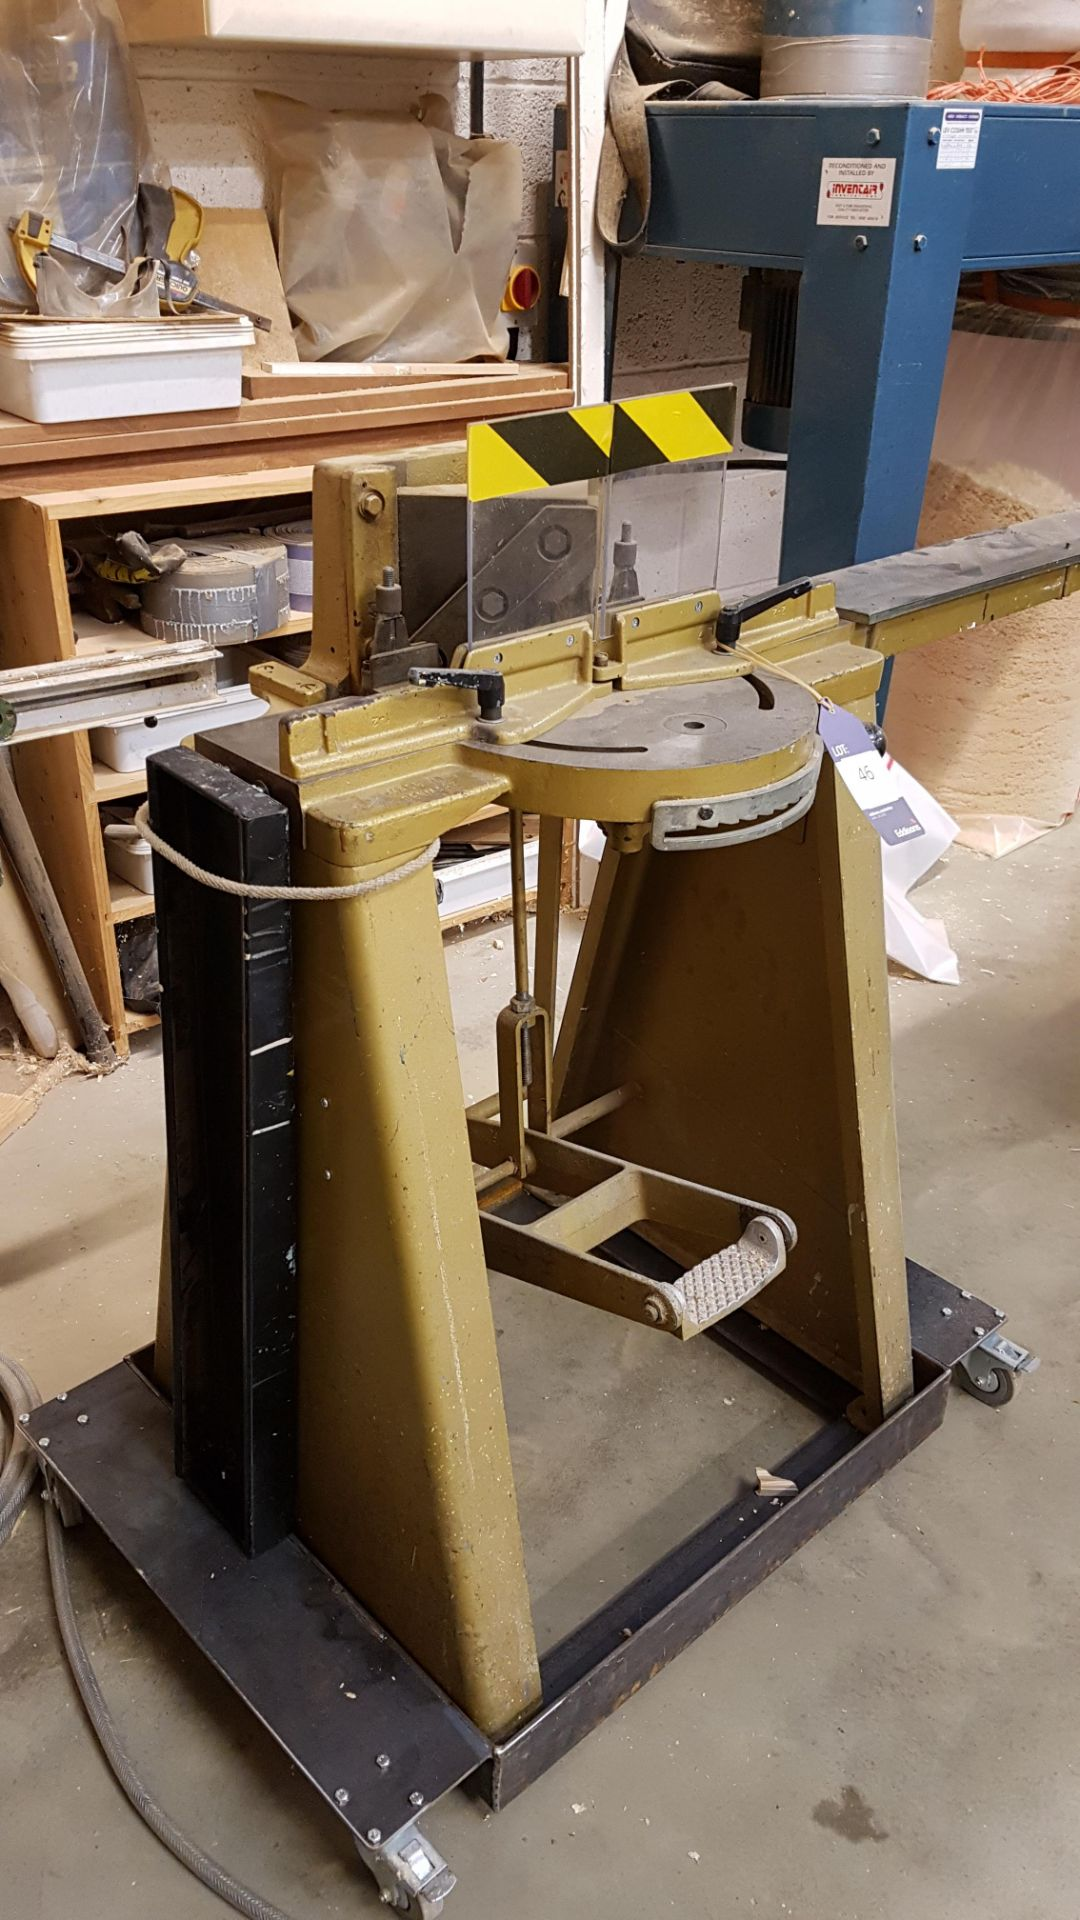 Lot 46 - * Treadle Operated Mitre Cutter A Treadle Opereated Manual Mitre Cutter - Make Unknown. Please